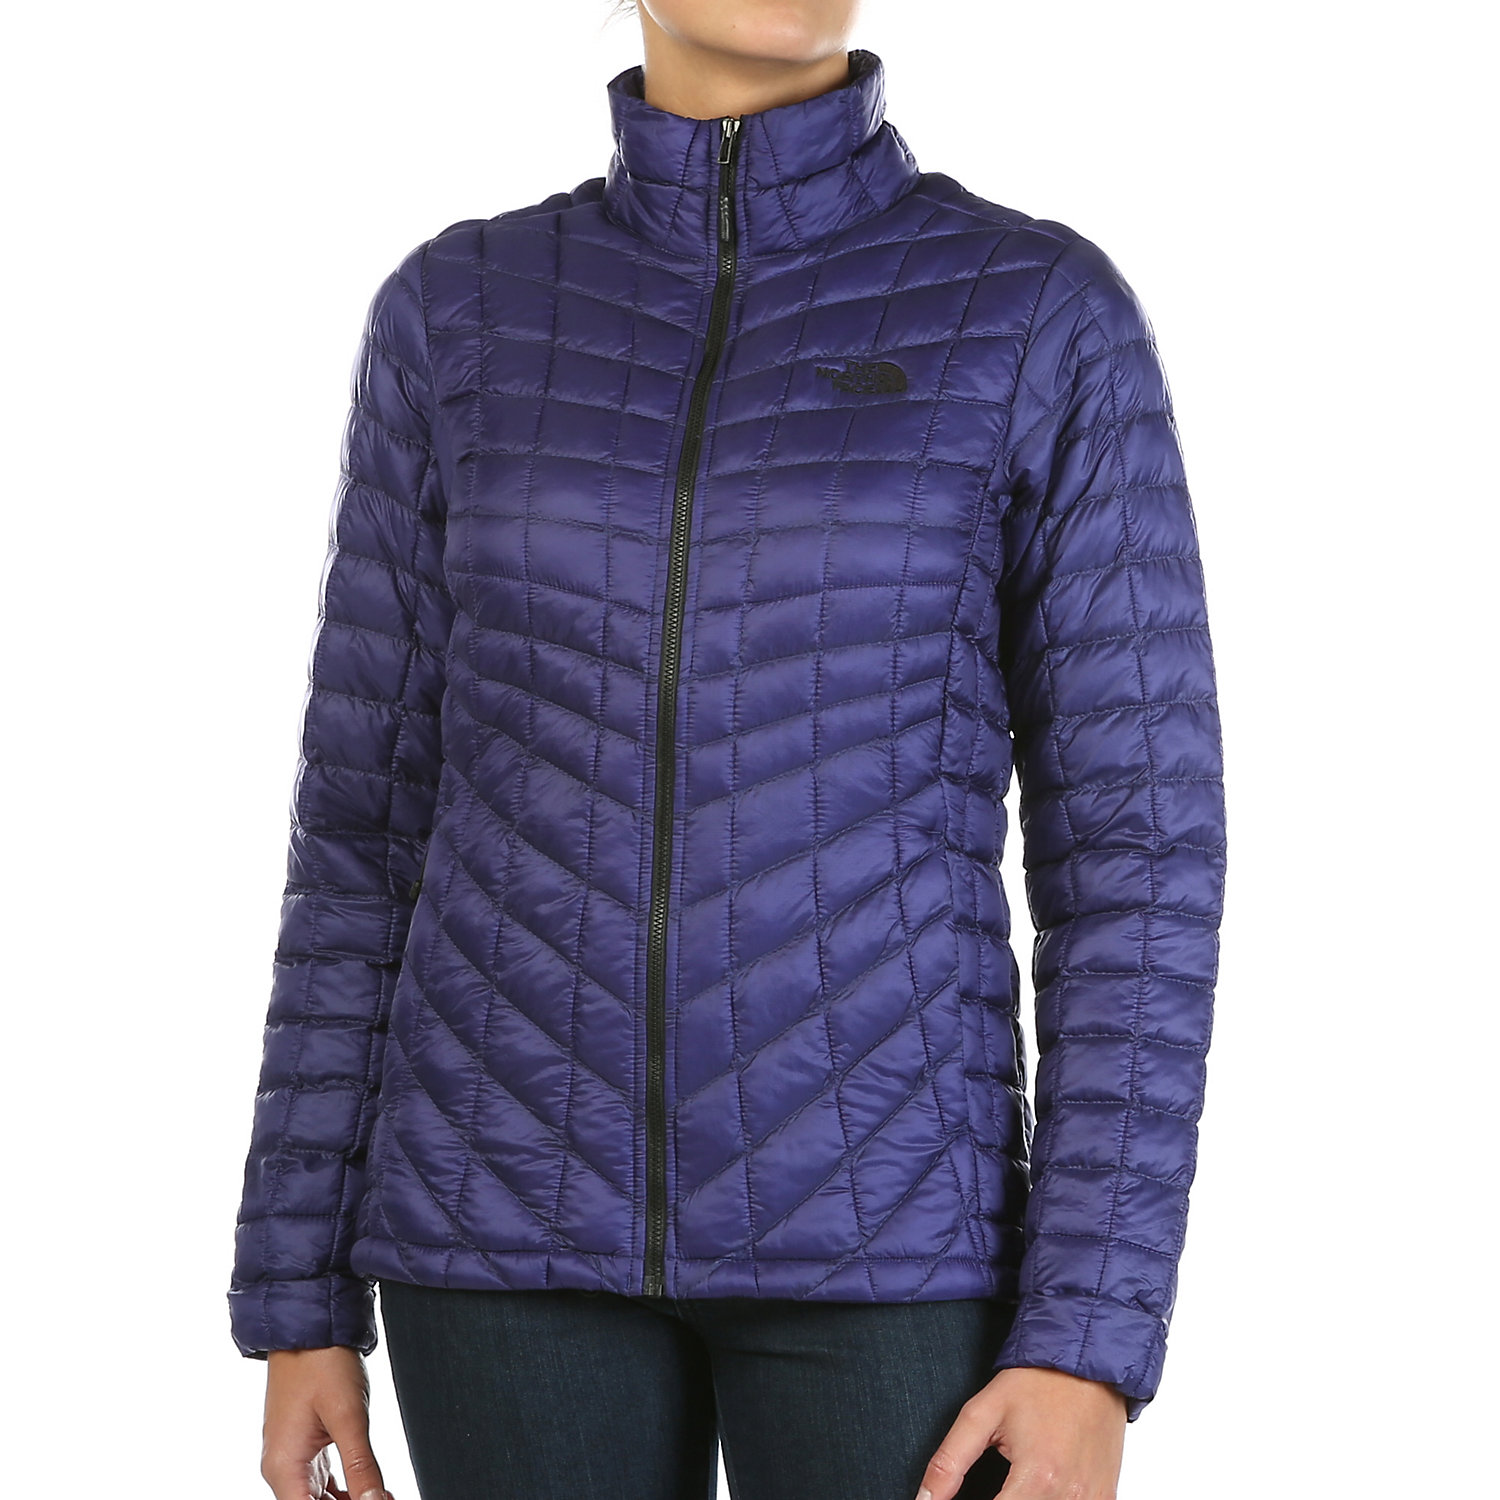 9c8b169fa The North Face Women's ThermoBall Full Zip Jacket